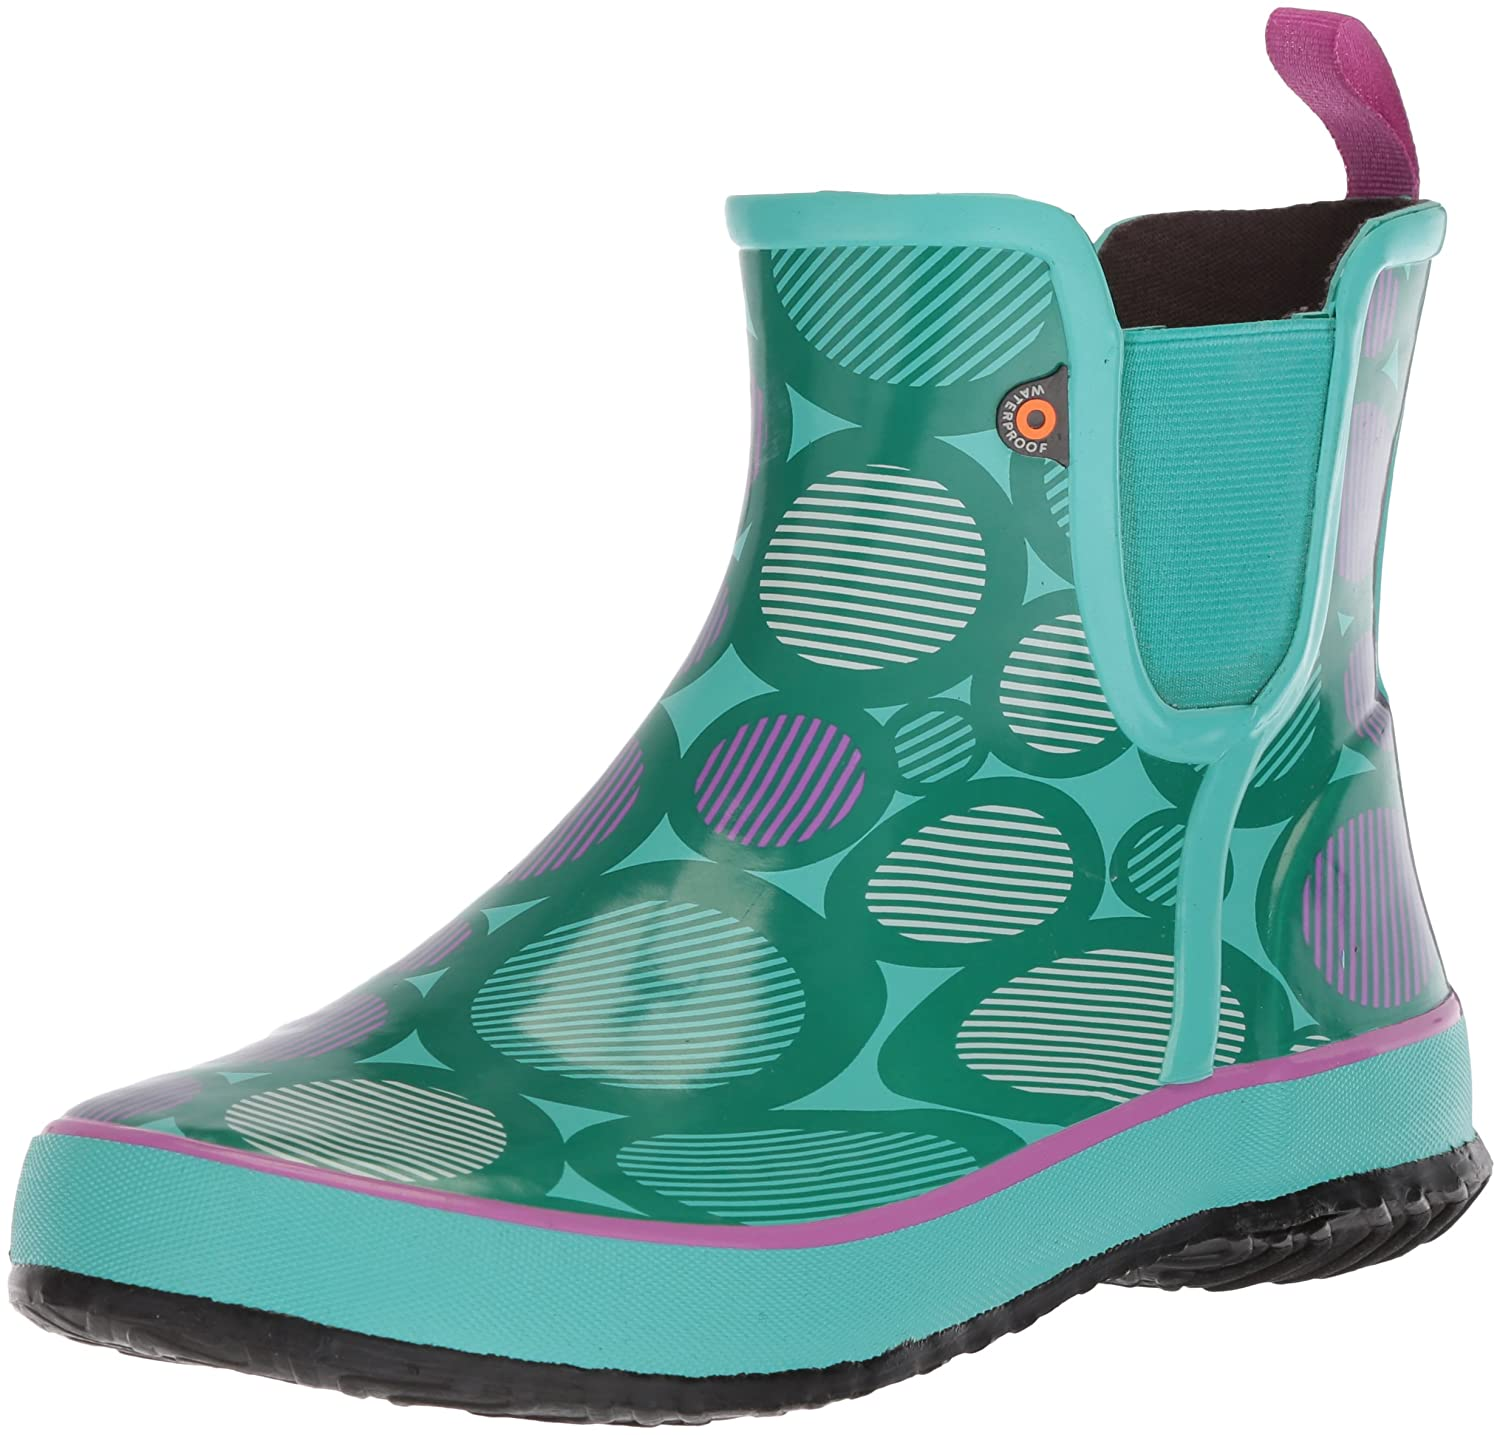 Bogs Kids' Amanda Slip ON Multi DOT Rain Boot 72215K-062-8